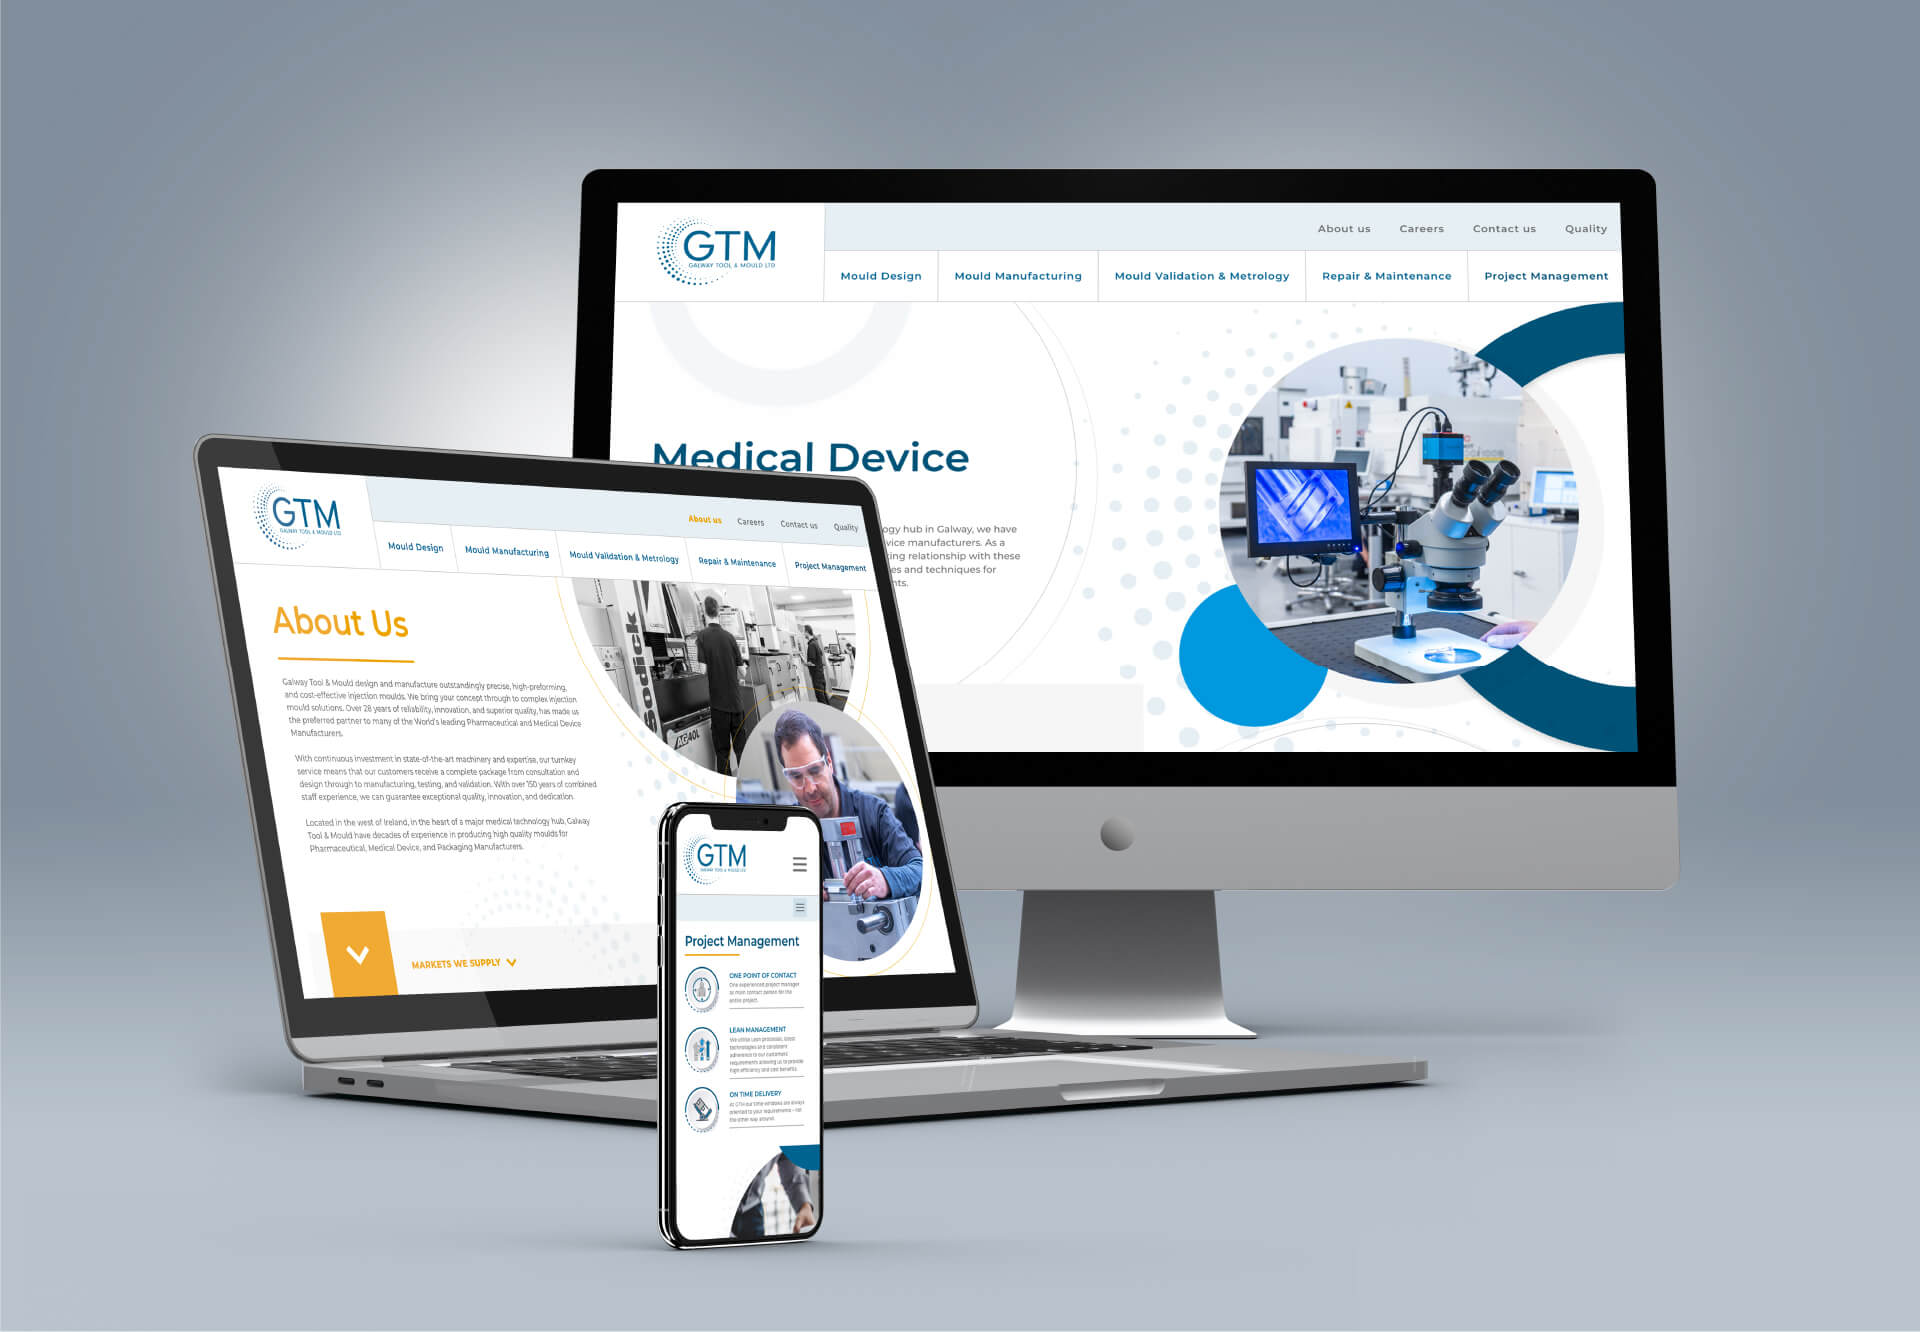 Web design mockups for GTM across different screen resolutions